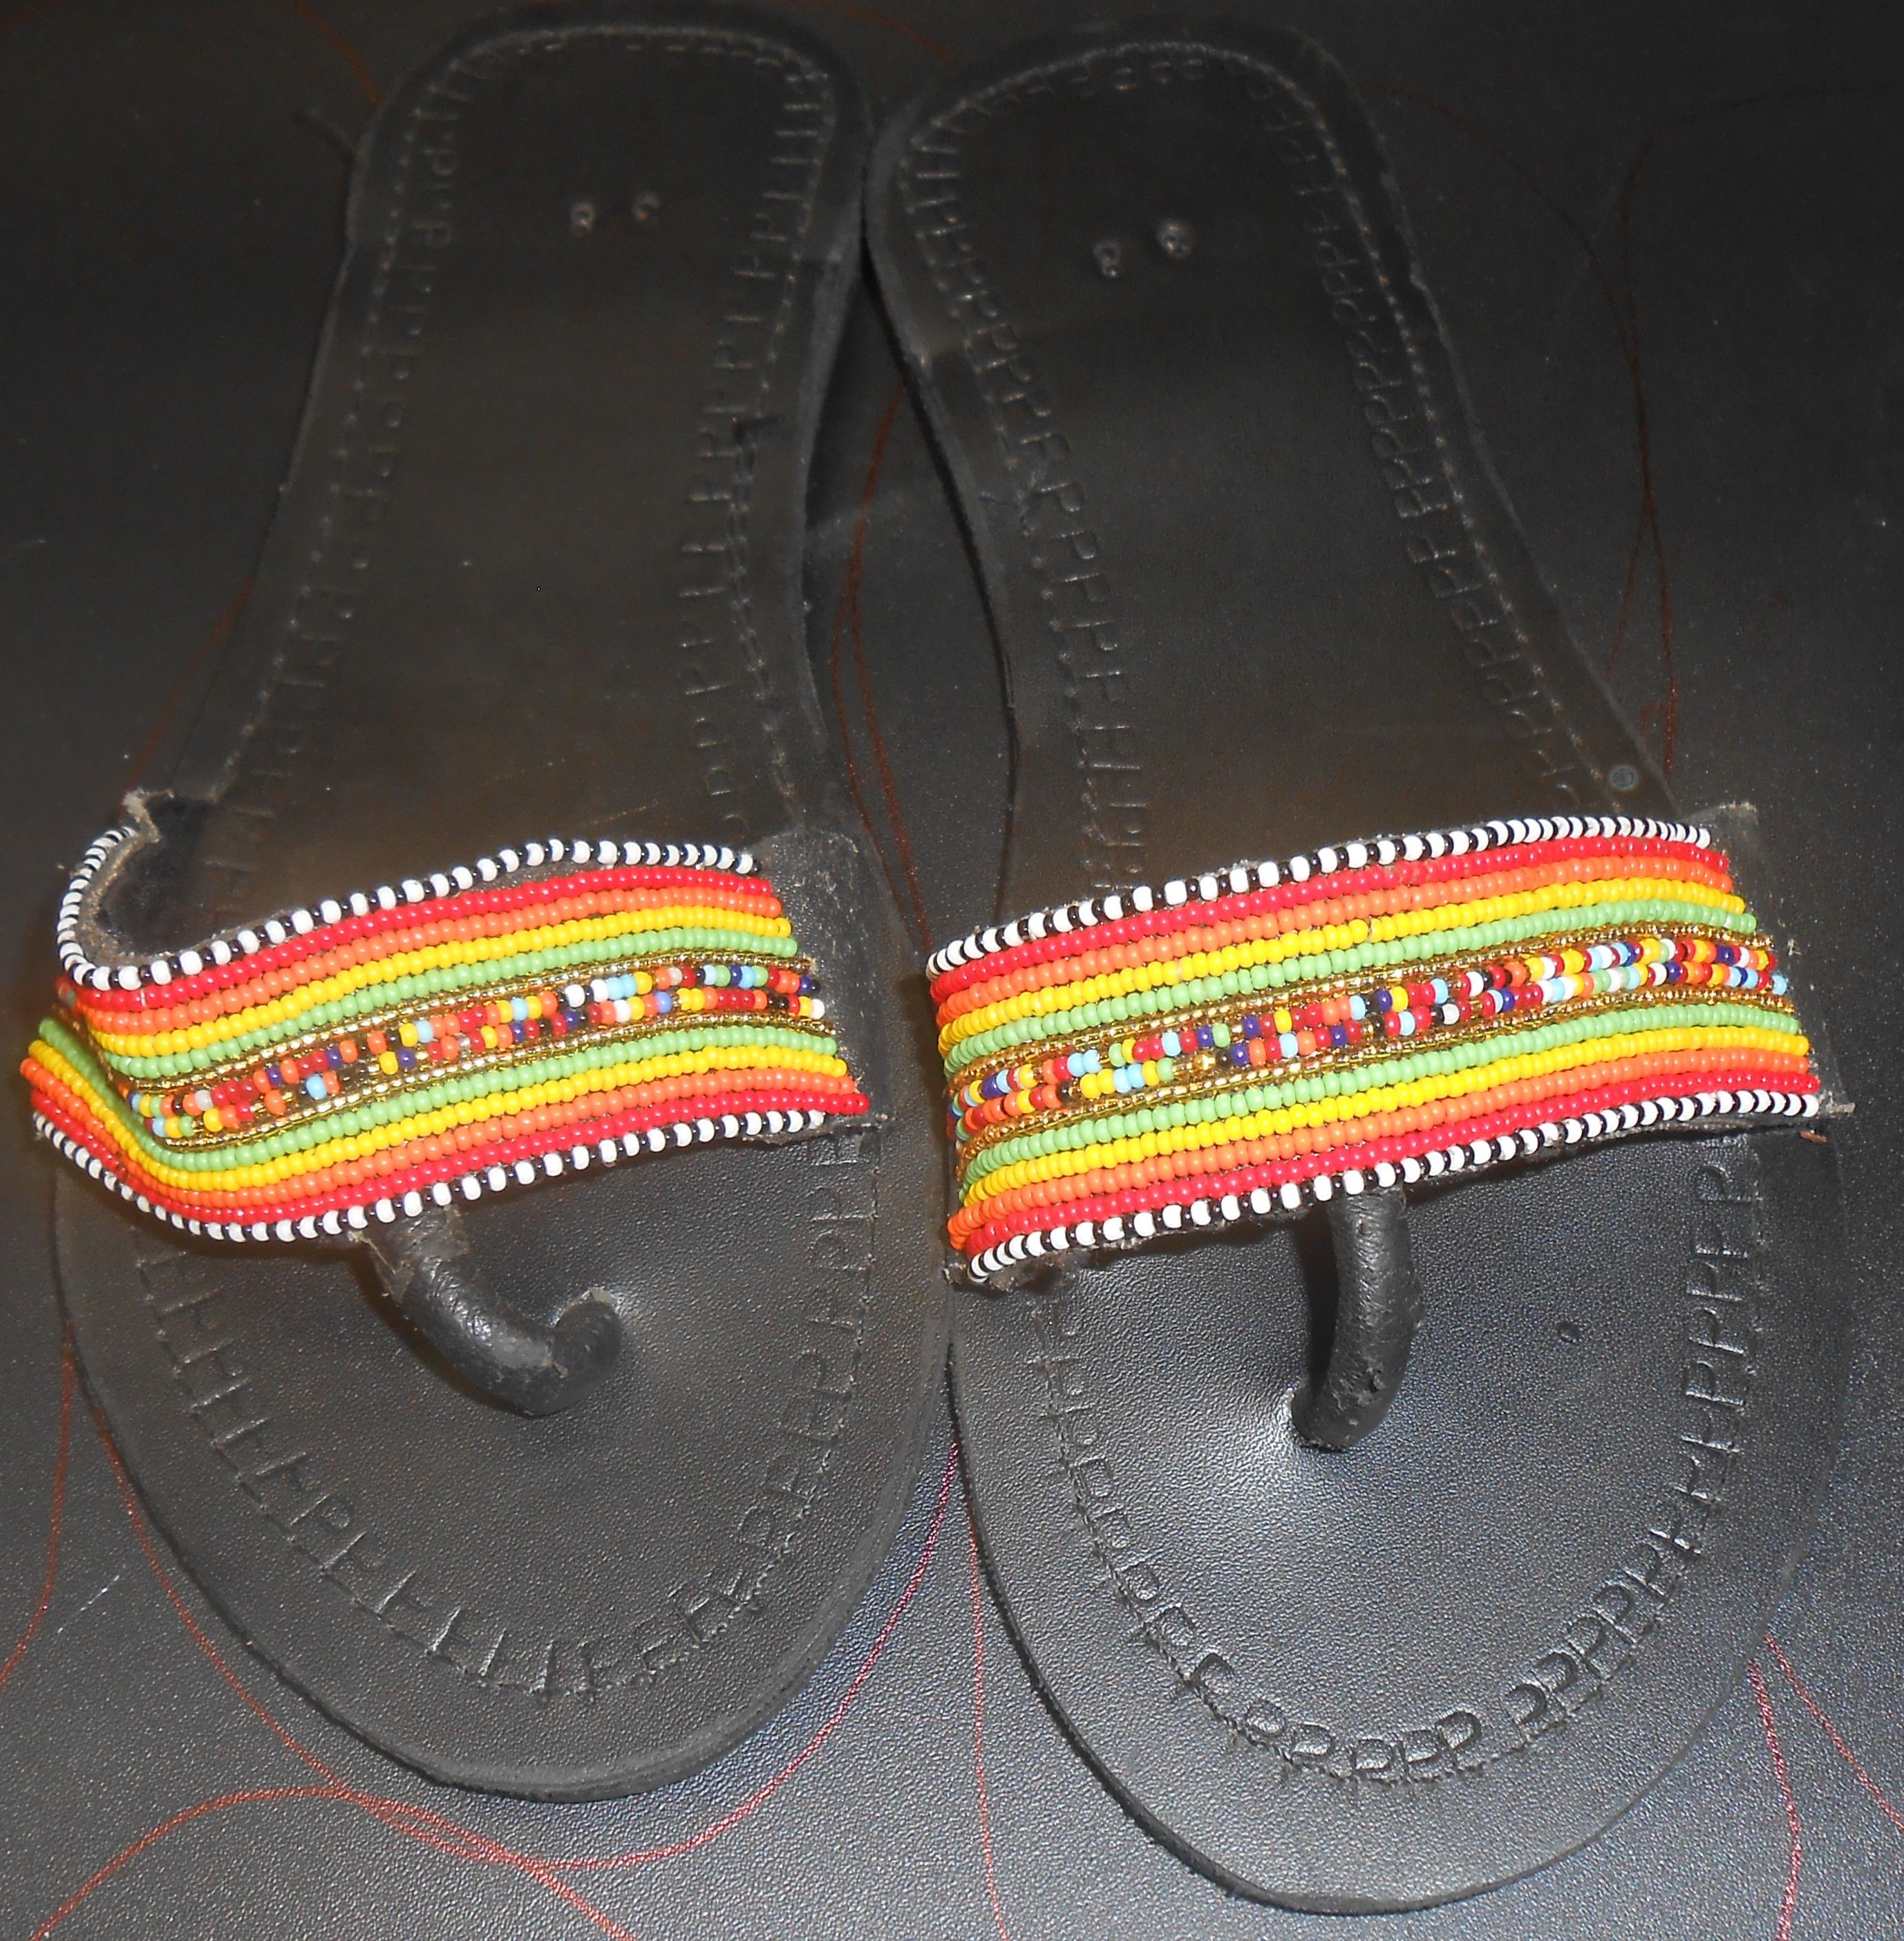 Leather Sandals decorated using beads